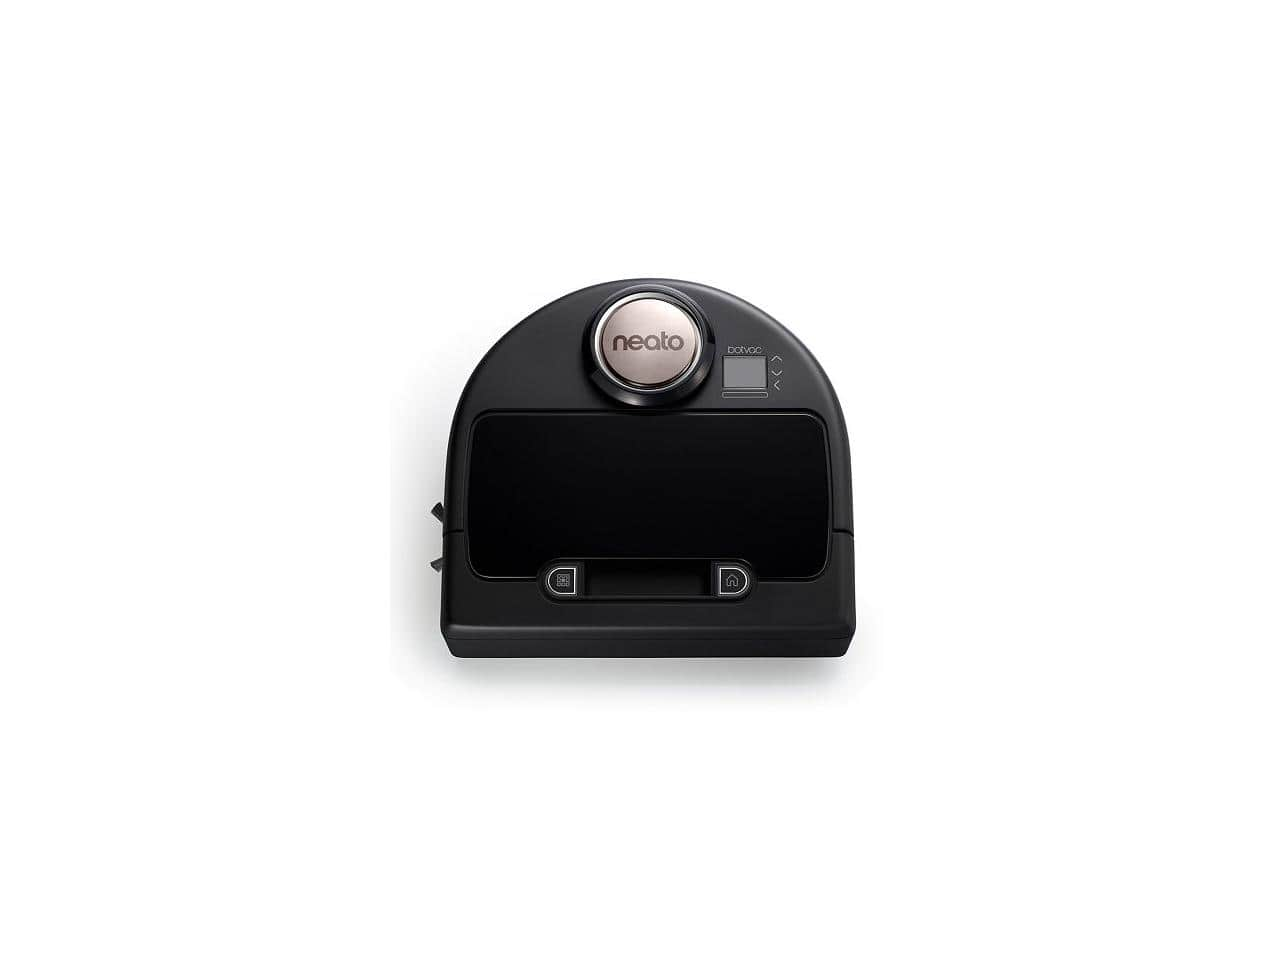 Neato Botvac Wi-Fi Connected - $479.99 with free shipping (AimToFind via Newegg)